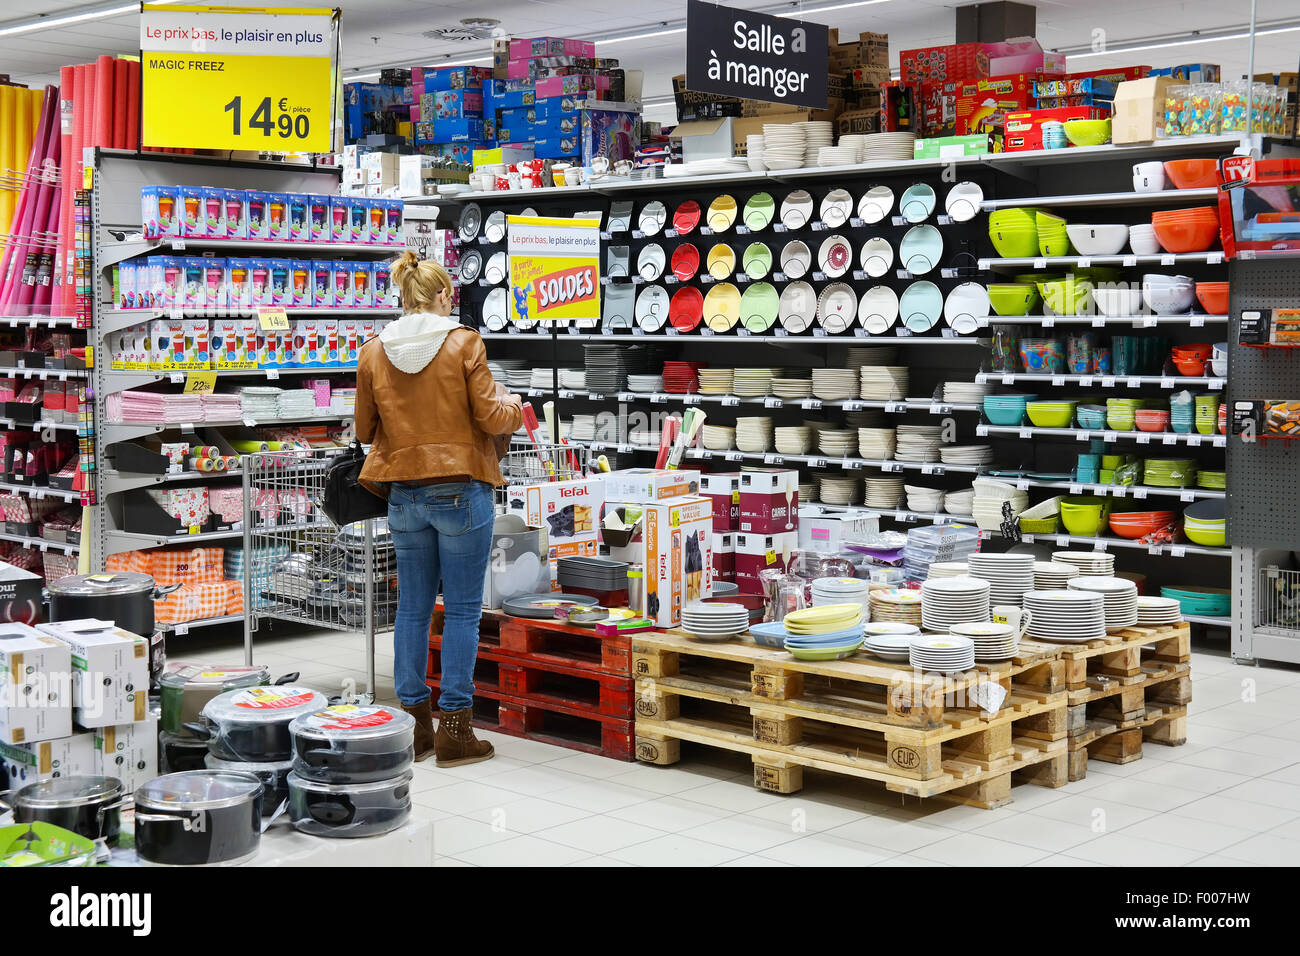 Household appliances and interior decorating department of a Carrefour Hypermarket - Stock Image